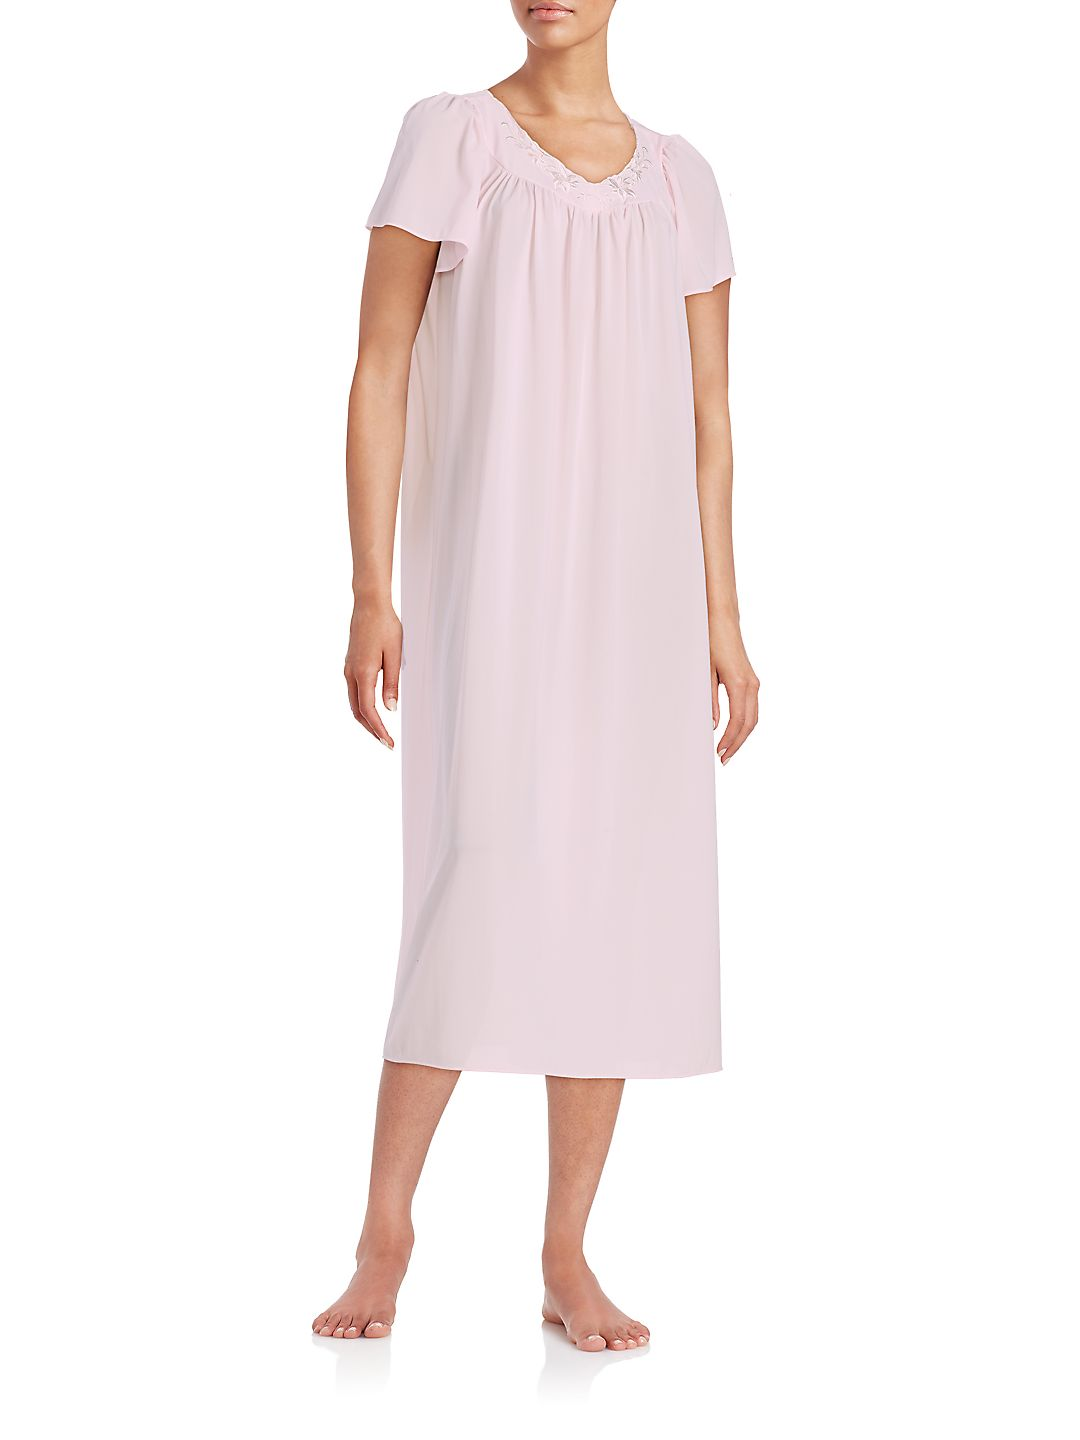 Embroidered Floral Nightgown